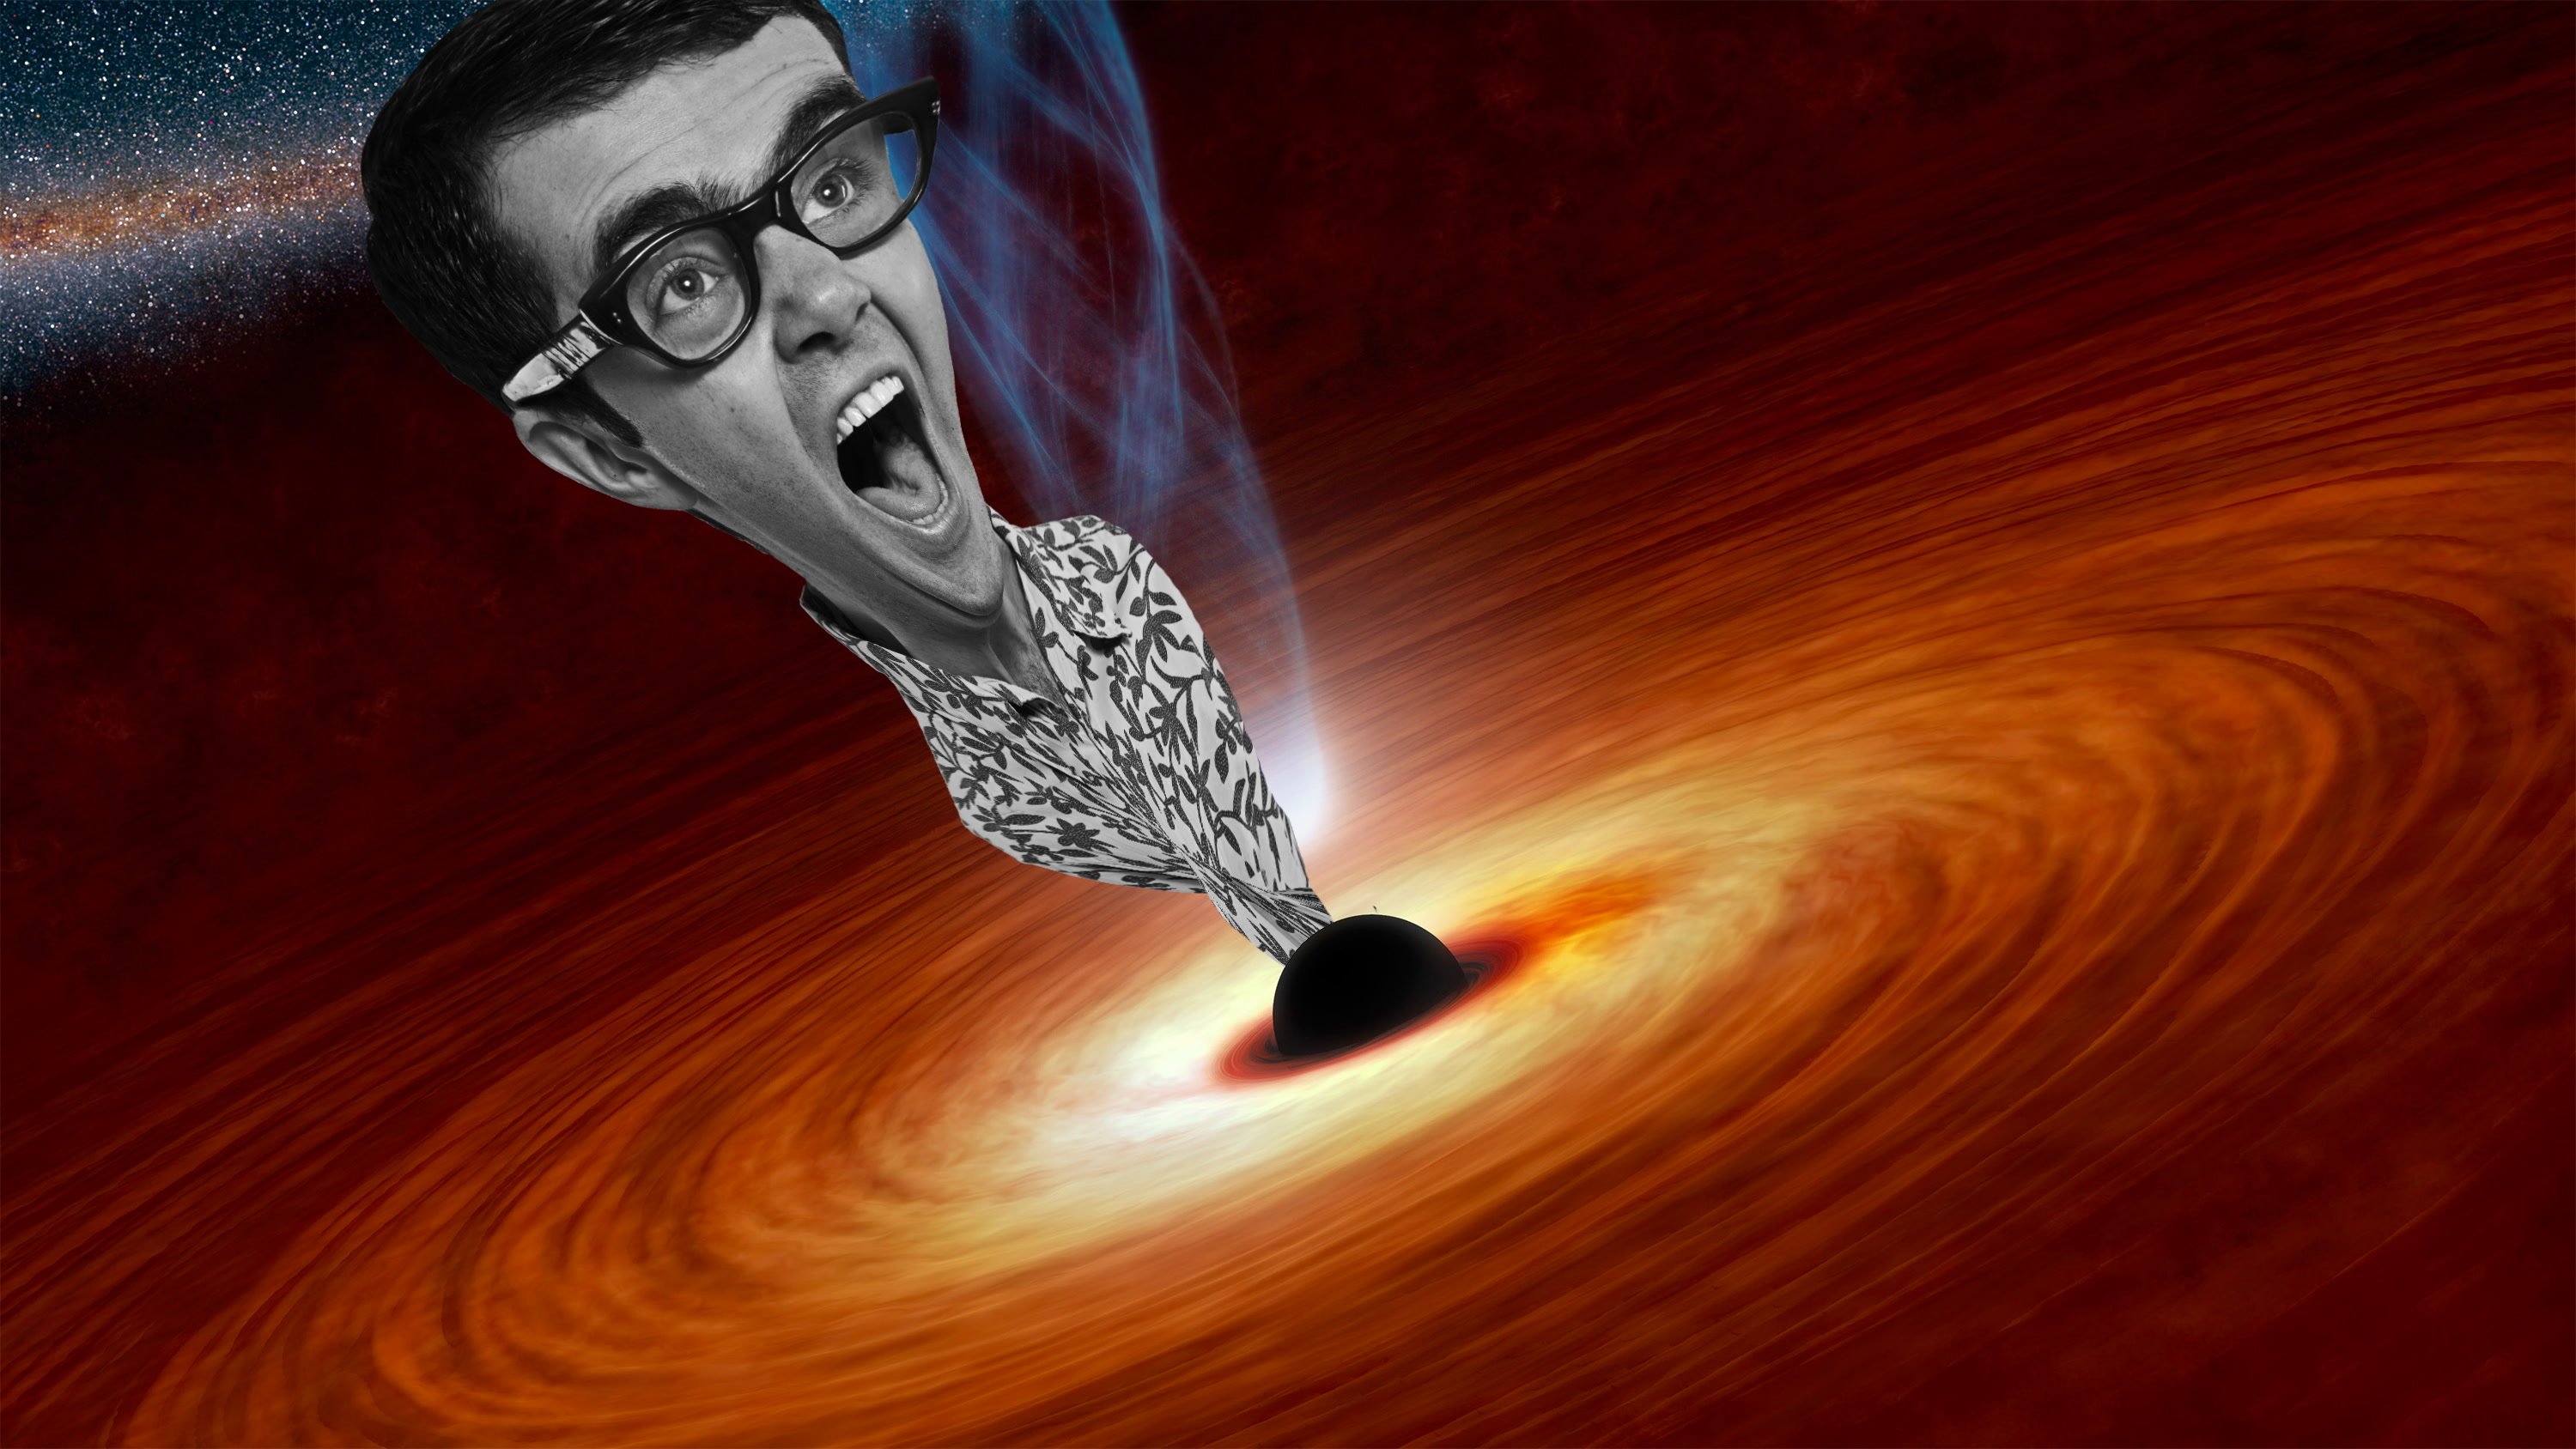 Black hole death: How extreme tidal forces turn humans into spaghetti